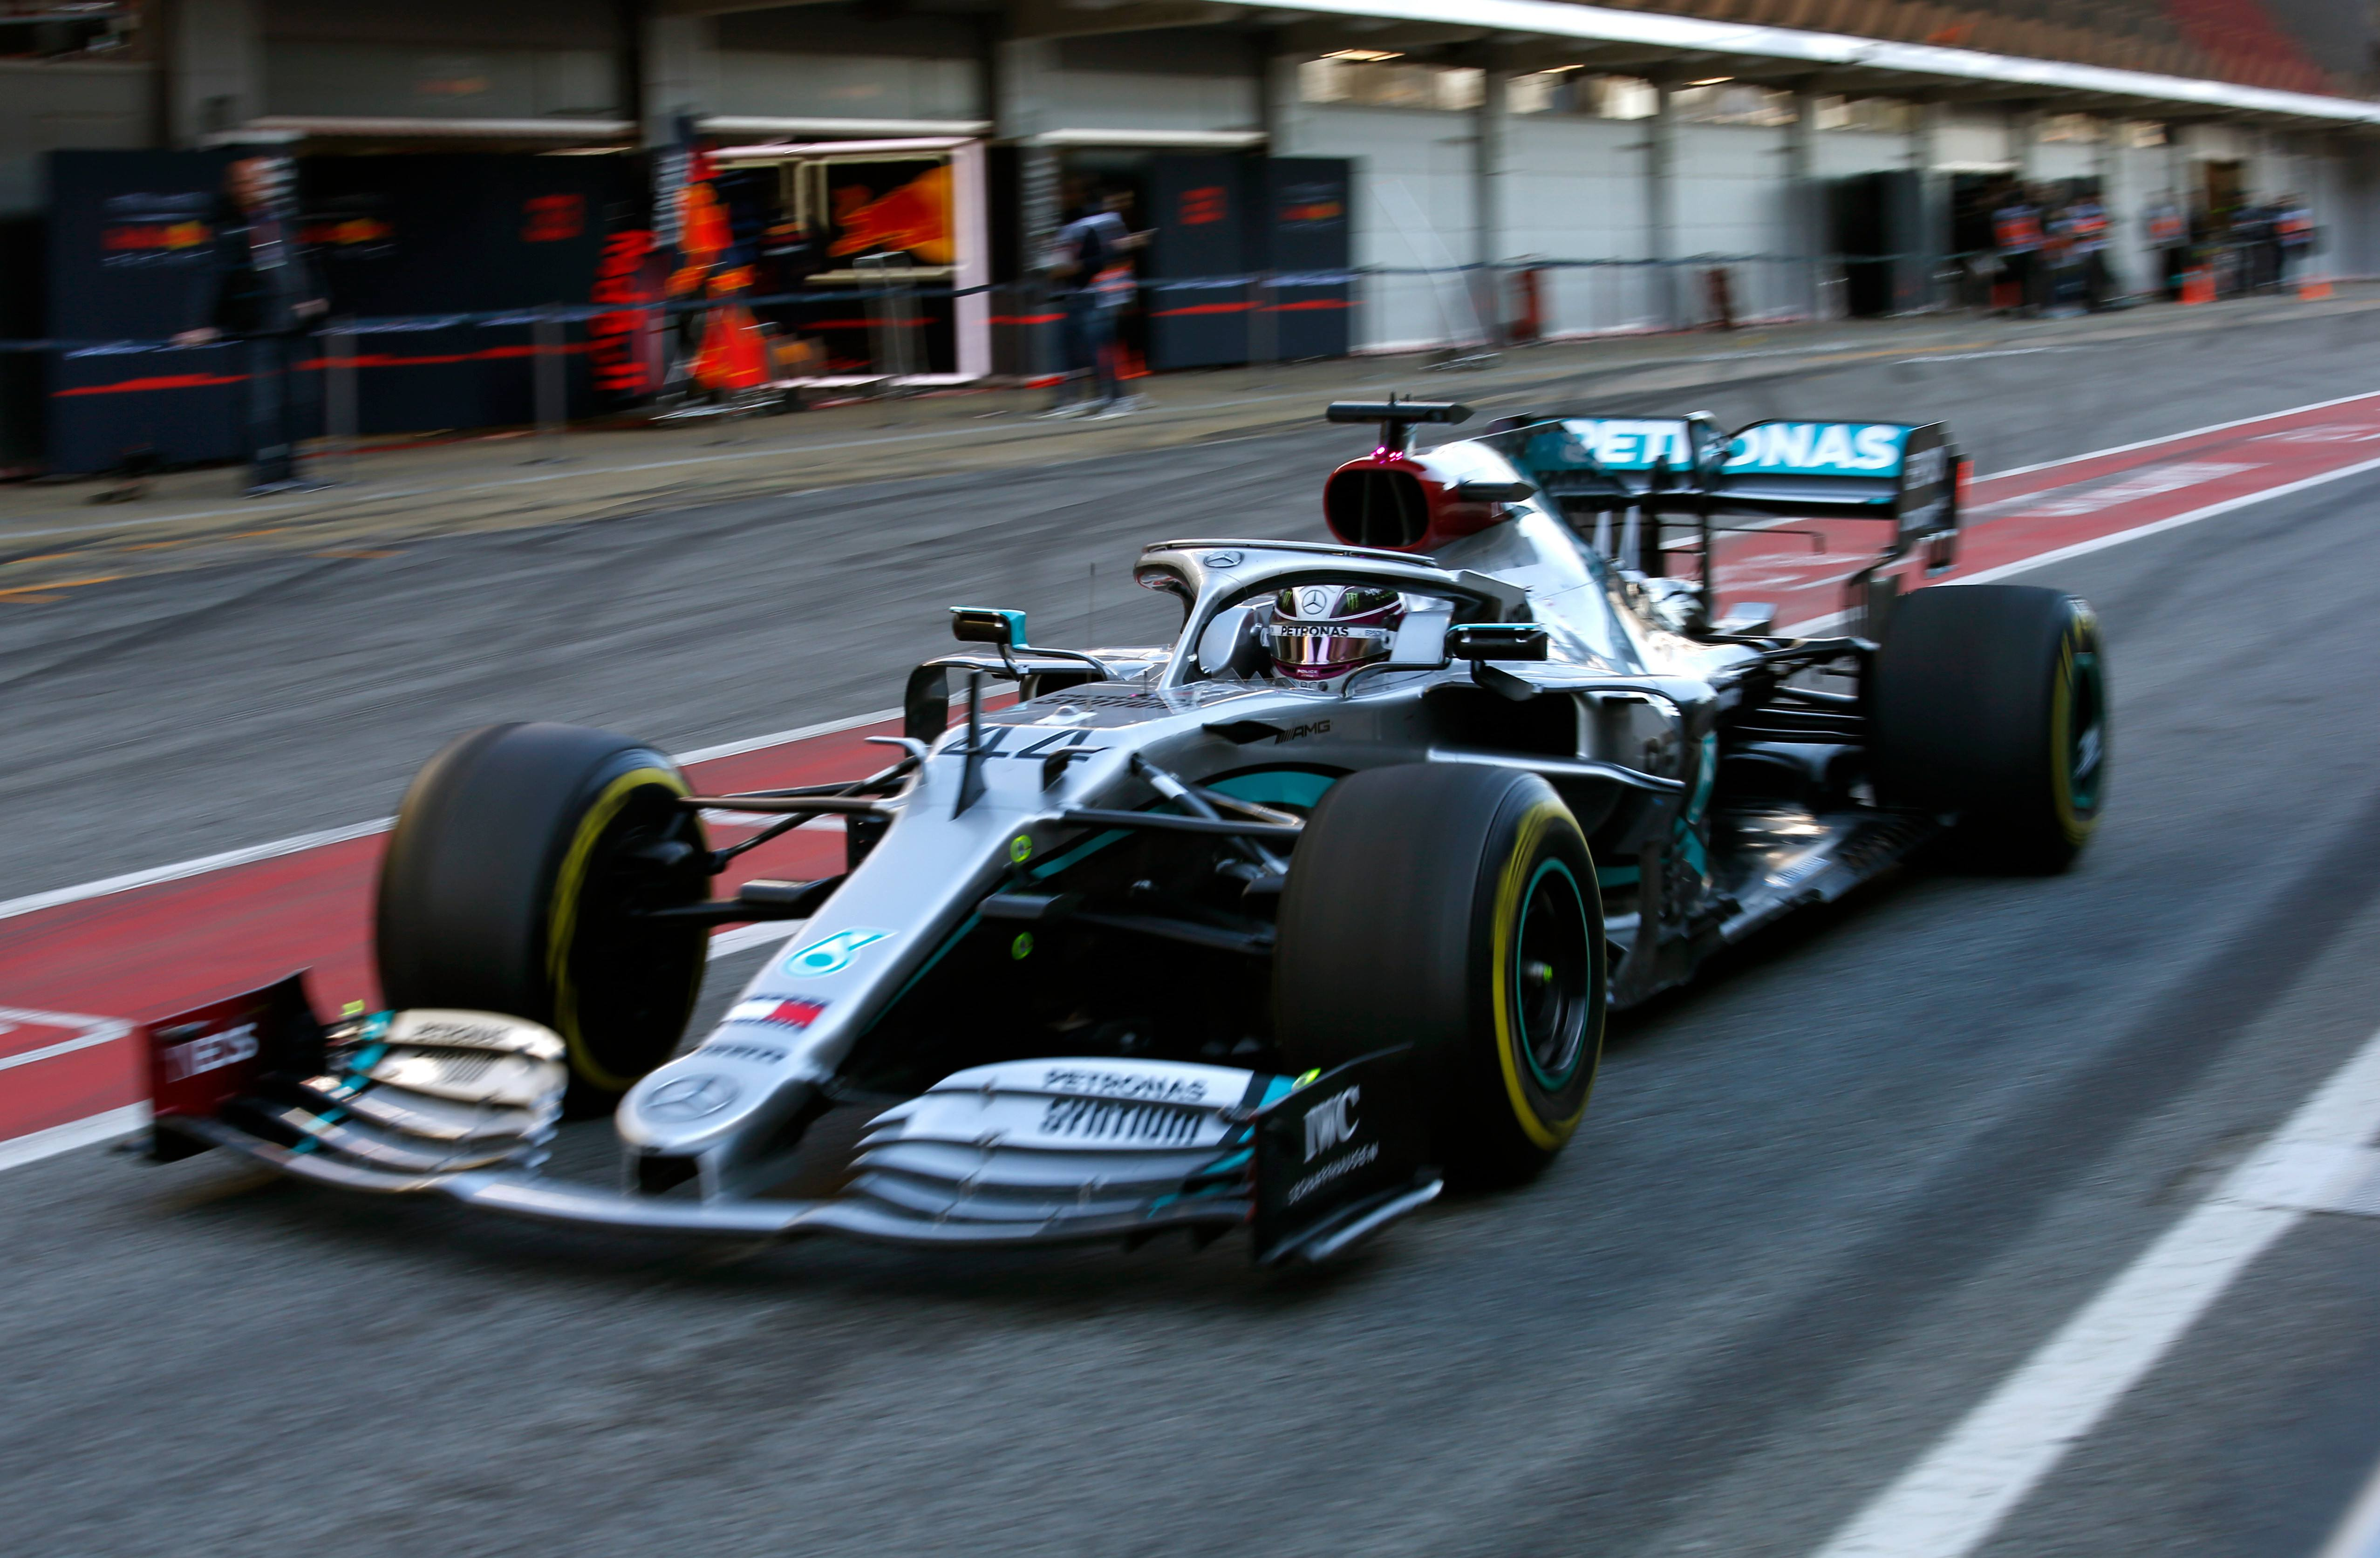 Lewis and Mercedes F1 favorites heading into challenging season